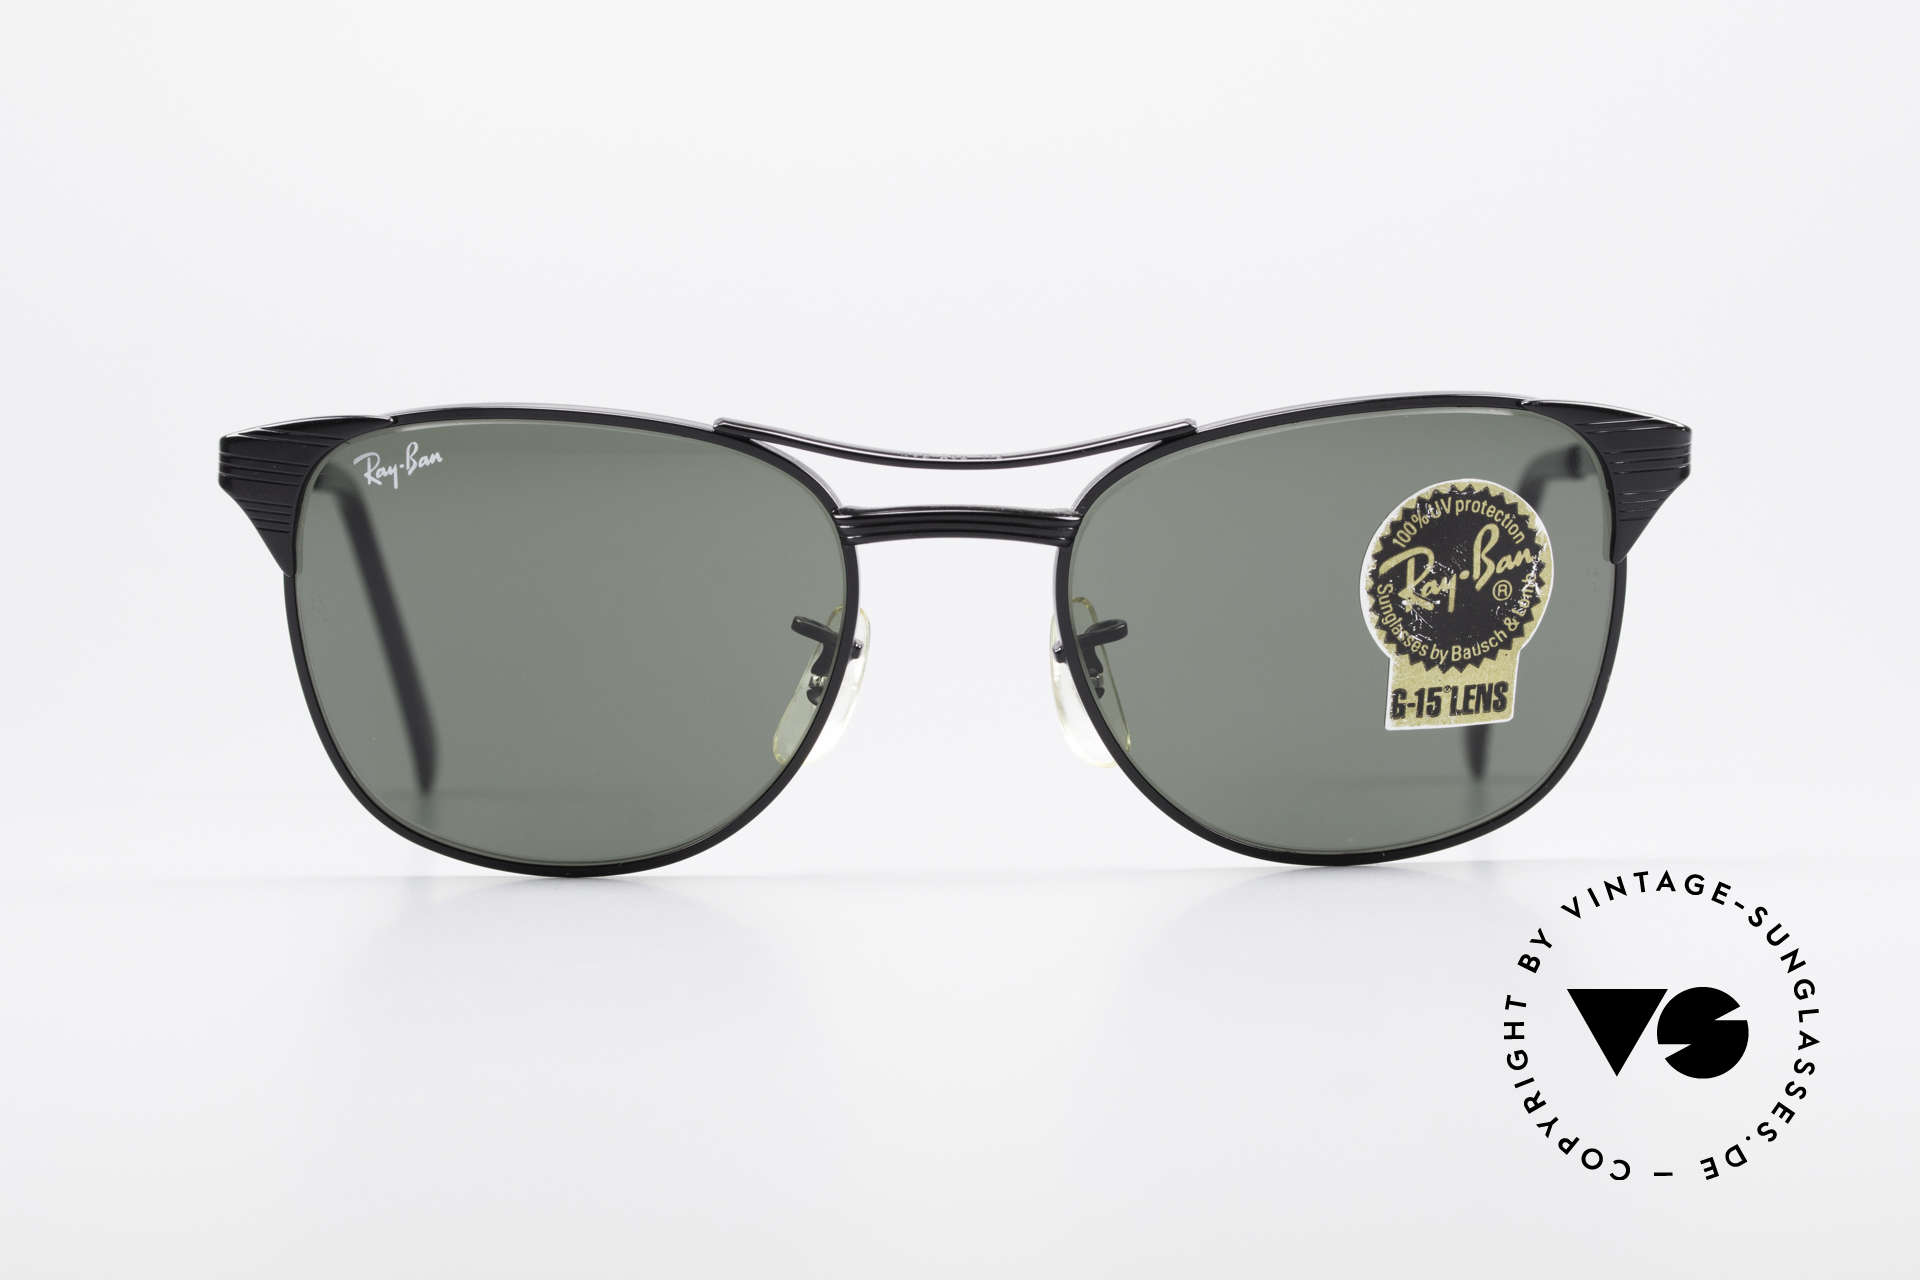 Sunglasses Ray Ban Signet Old Usa B L Ray Ban Shades Find great deals on ebay for ray ban wayfarer eyeglasses 5121. ray ban signet old usa b l ray ban shades